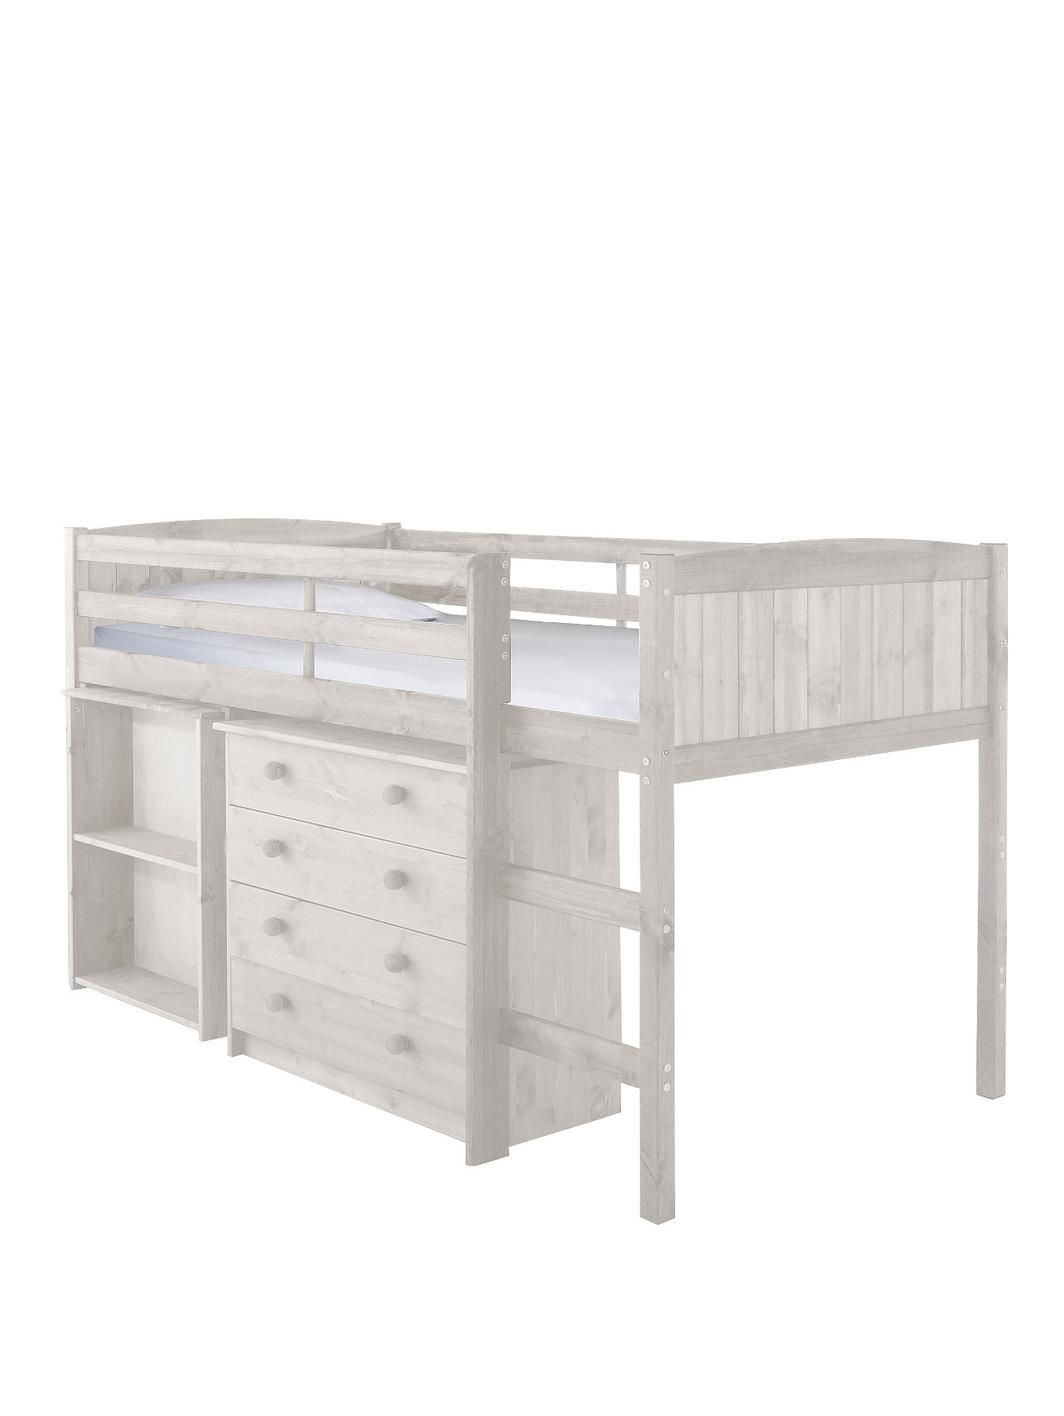 Kidspace Georgie Solid Pine Mid Sleeper Bed Frame with Desk and ...